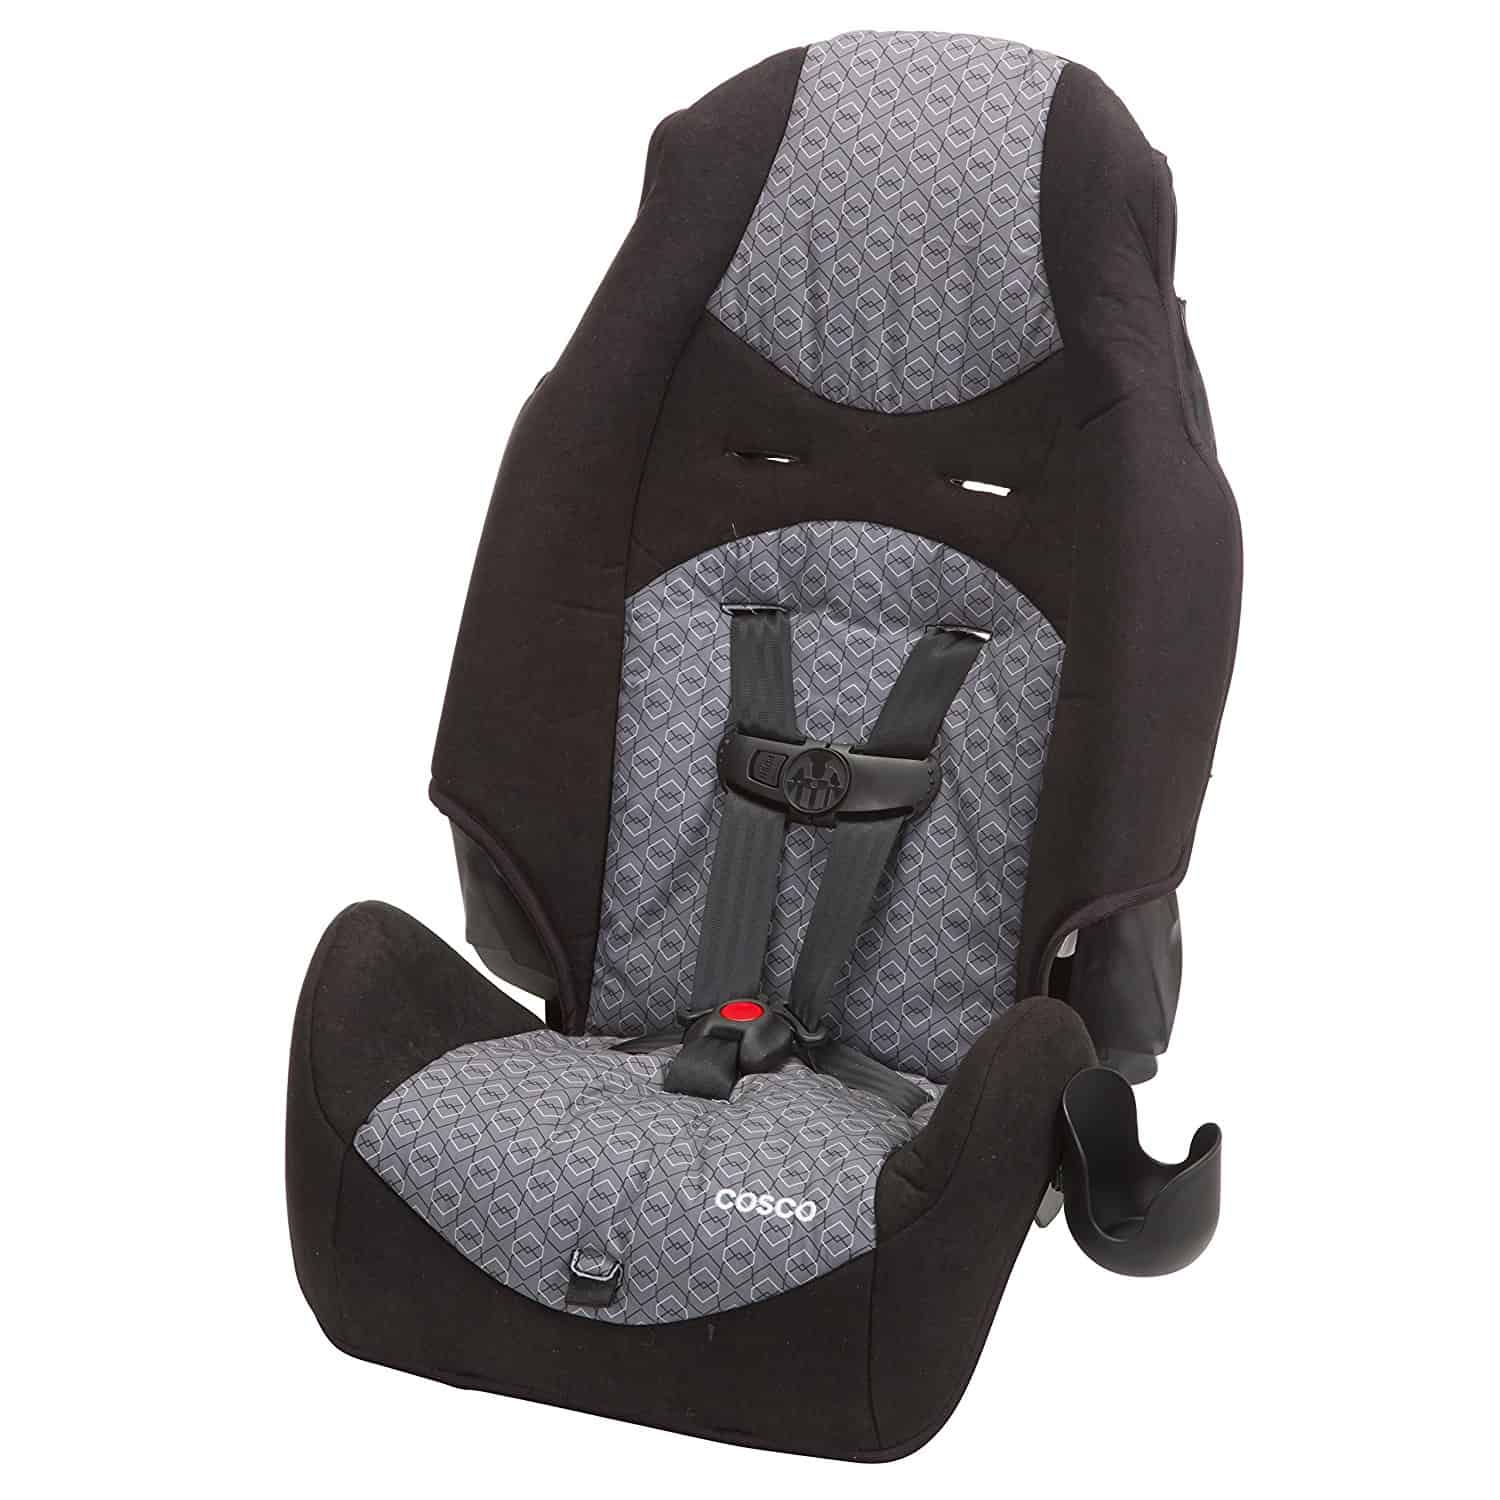 Booster Car Seat review: Cosco Highback | Baby Bargains